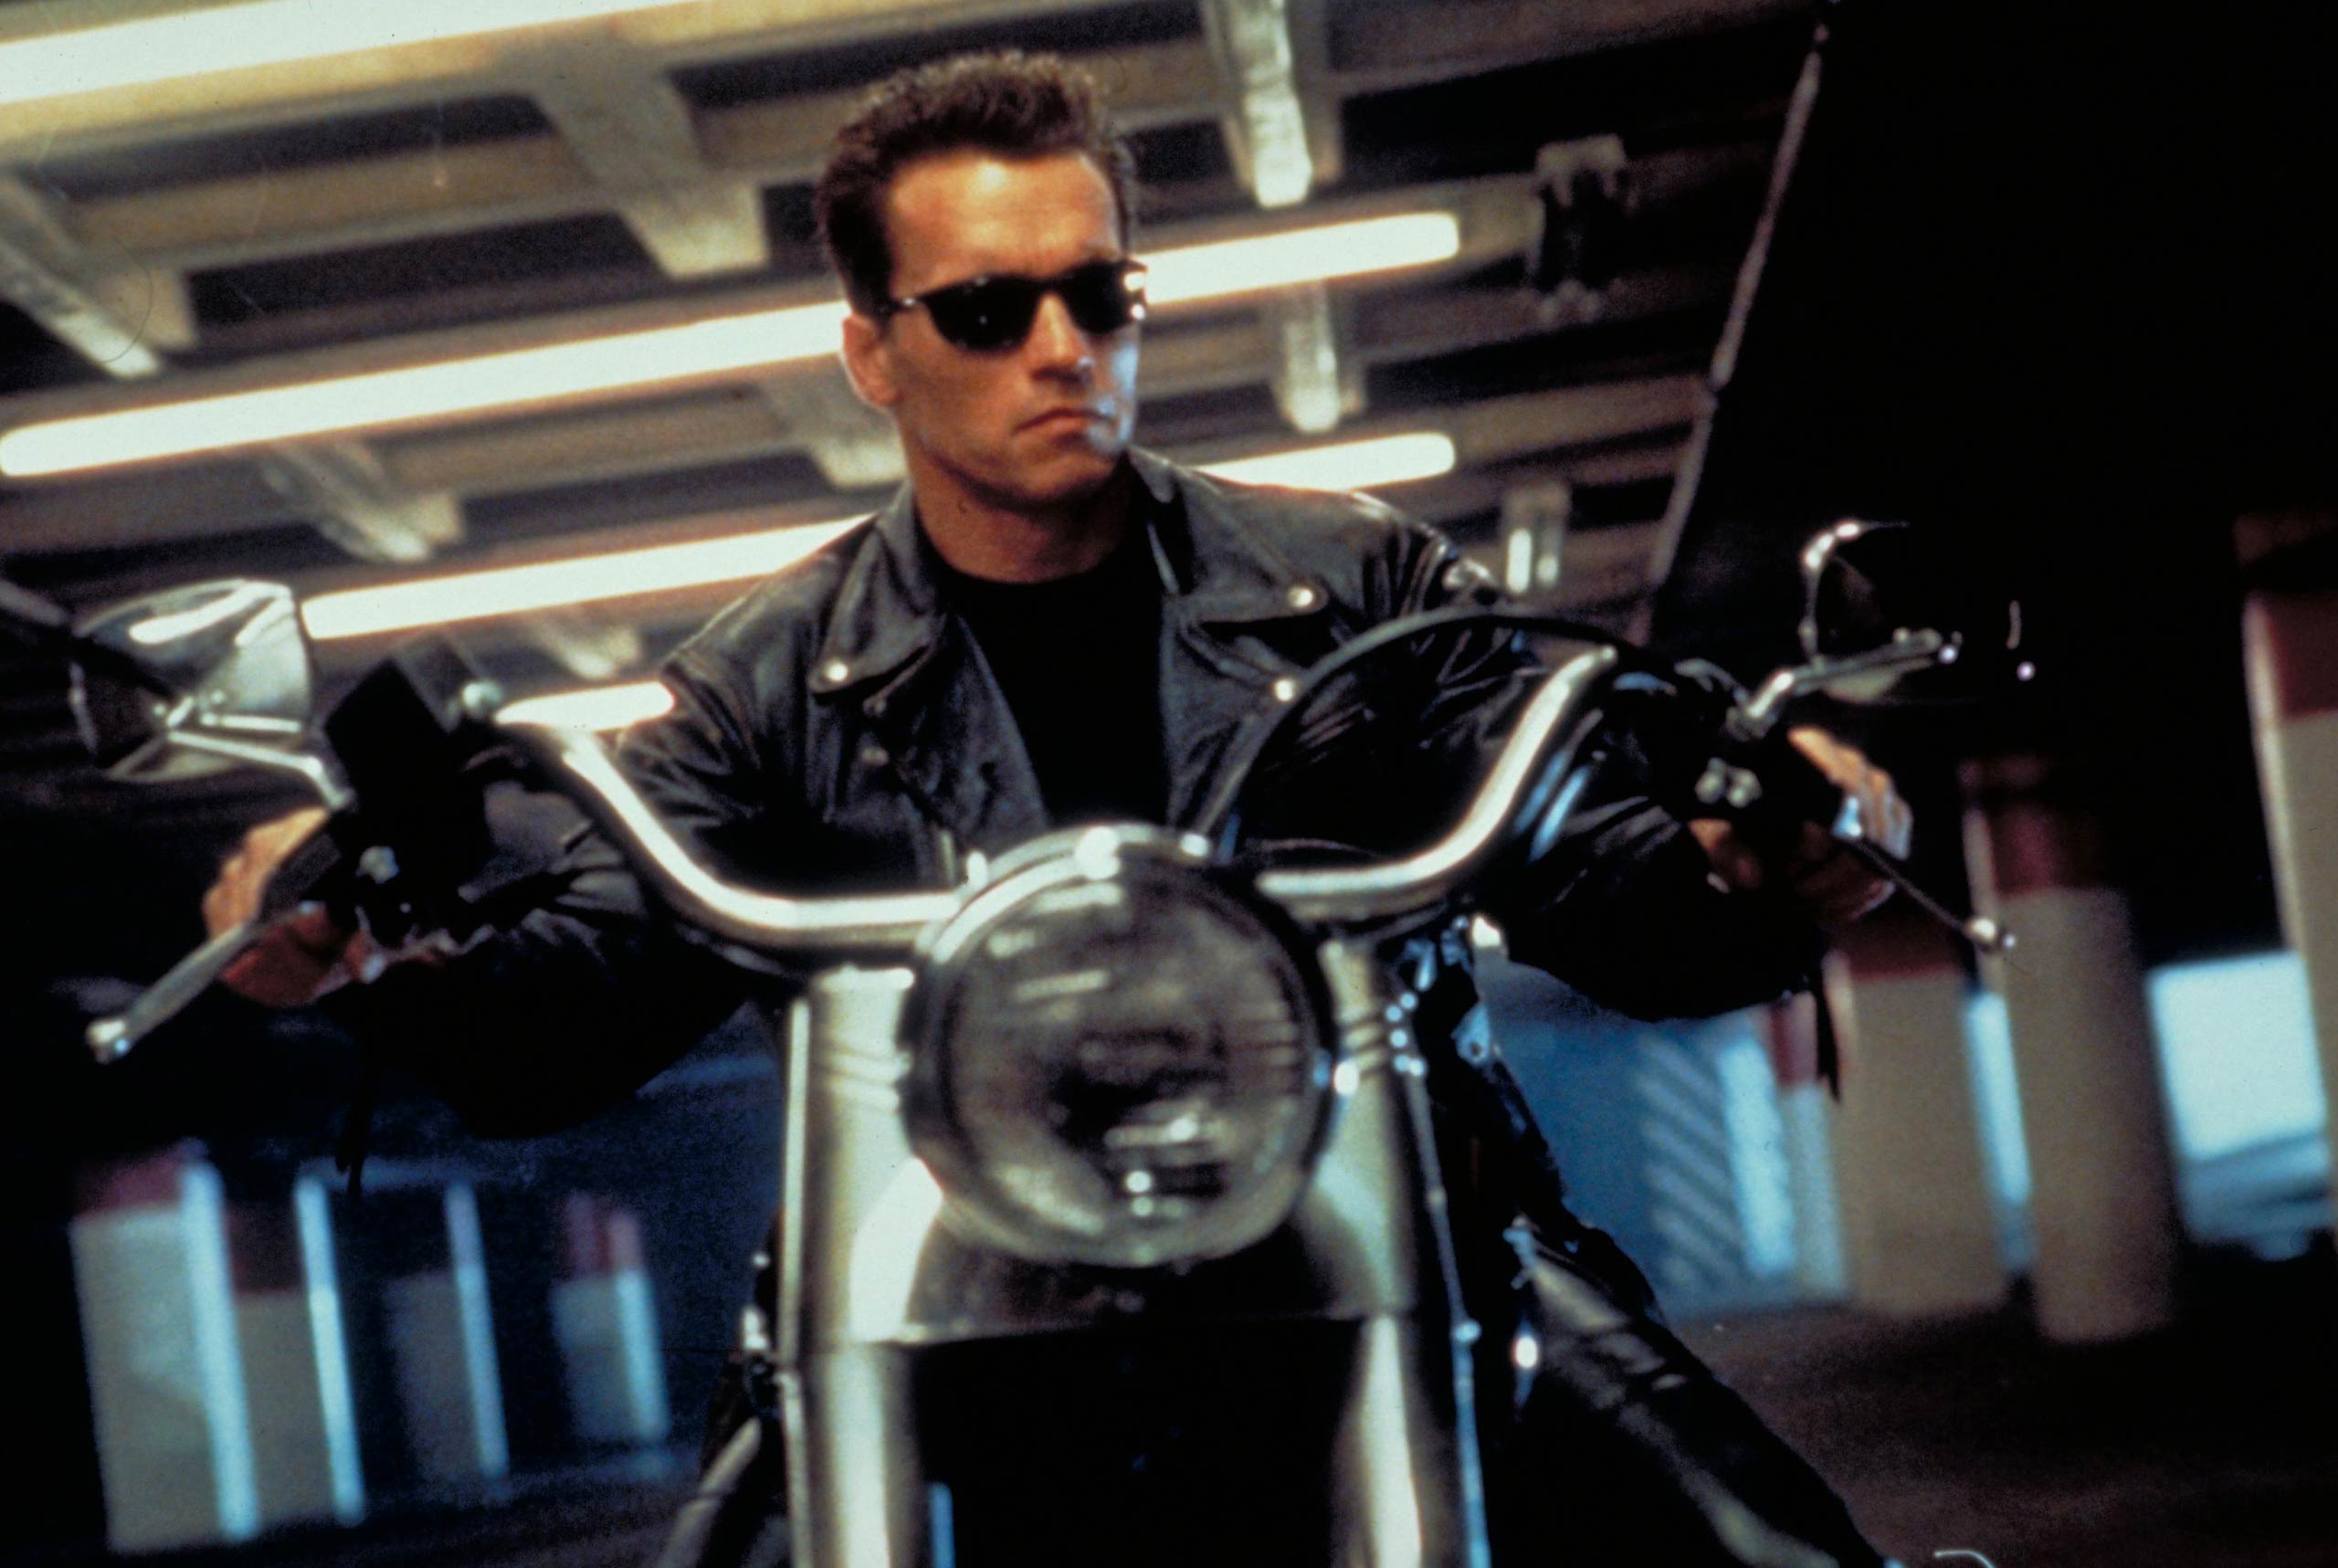 <strong><i>Terminator 2: Judgment Day</i></strong> In the second, more elaborate installment of the <i>Terminator</i> action movie franchise, Arnold Schwarzenegger is back as the Terminator, who must take on a newer, more advanced cyborg.